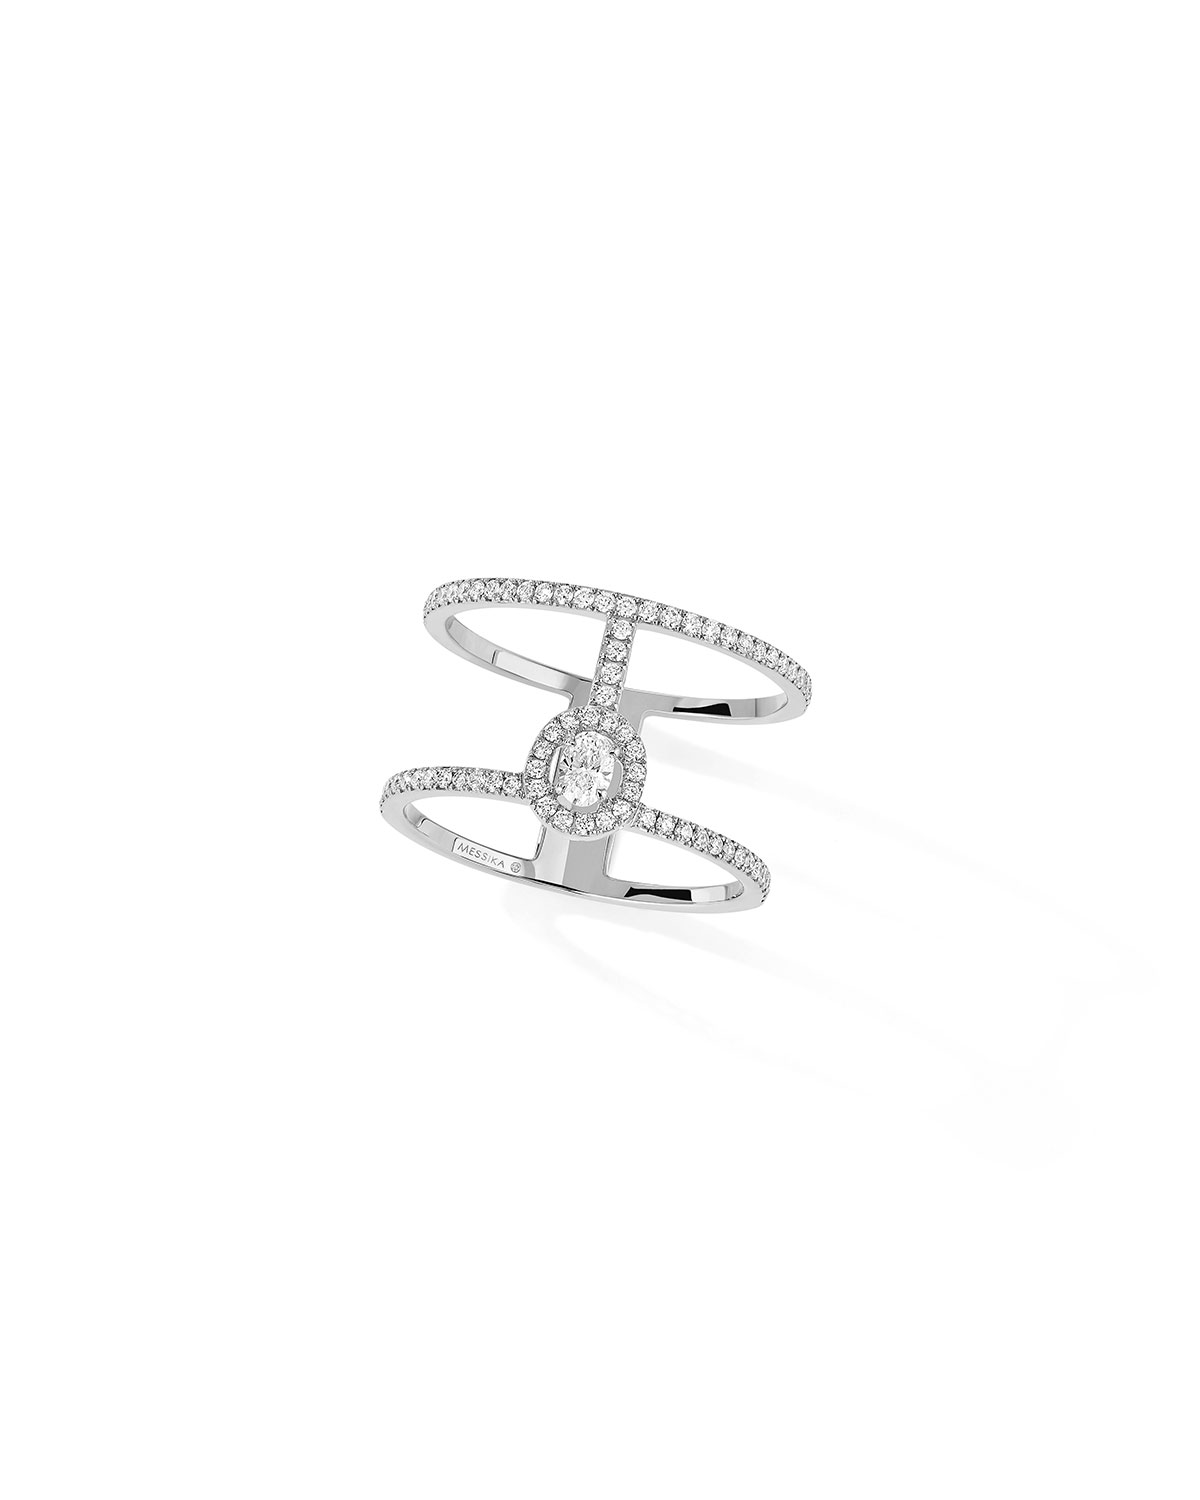 Glam'Azone 2-Row Pave Ring in 18k White Gold